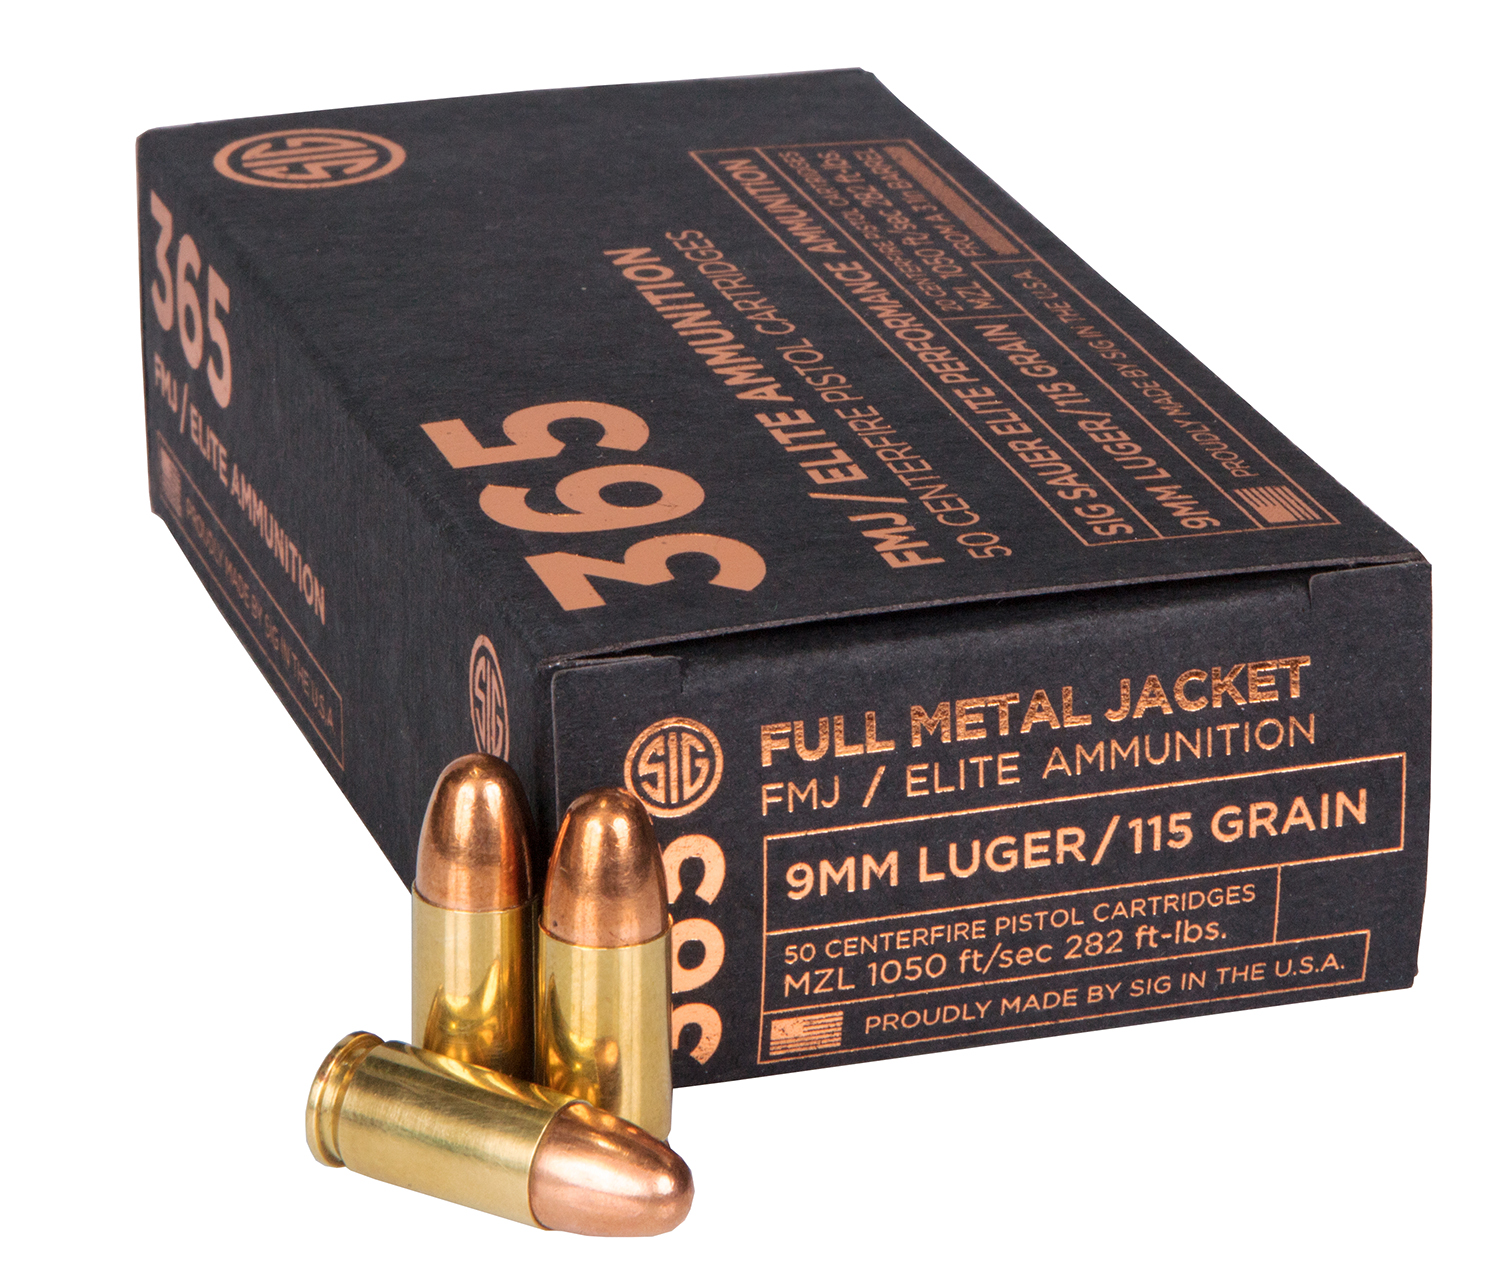 SIG Sauer Introduces SIG 365 Ammunition Optimized for Everyday Carry